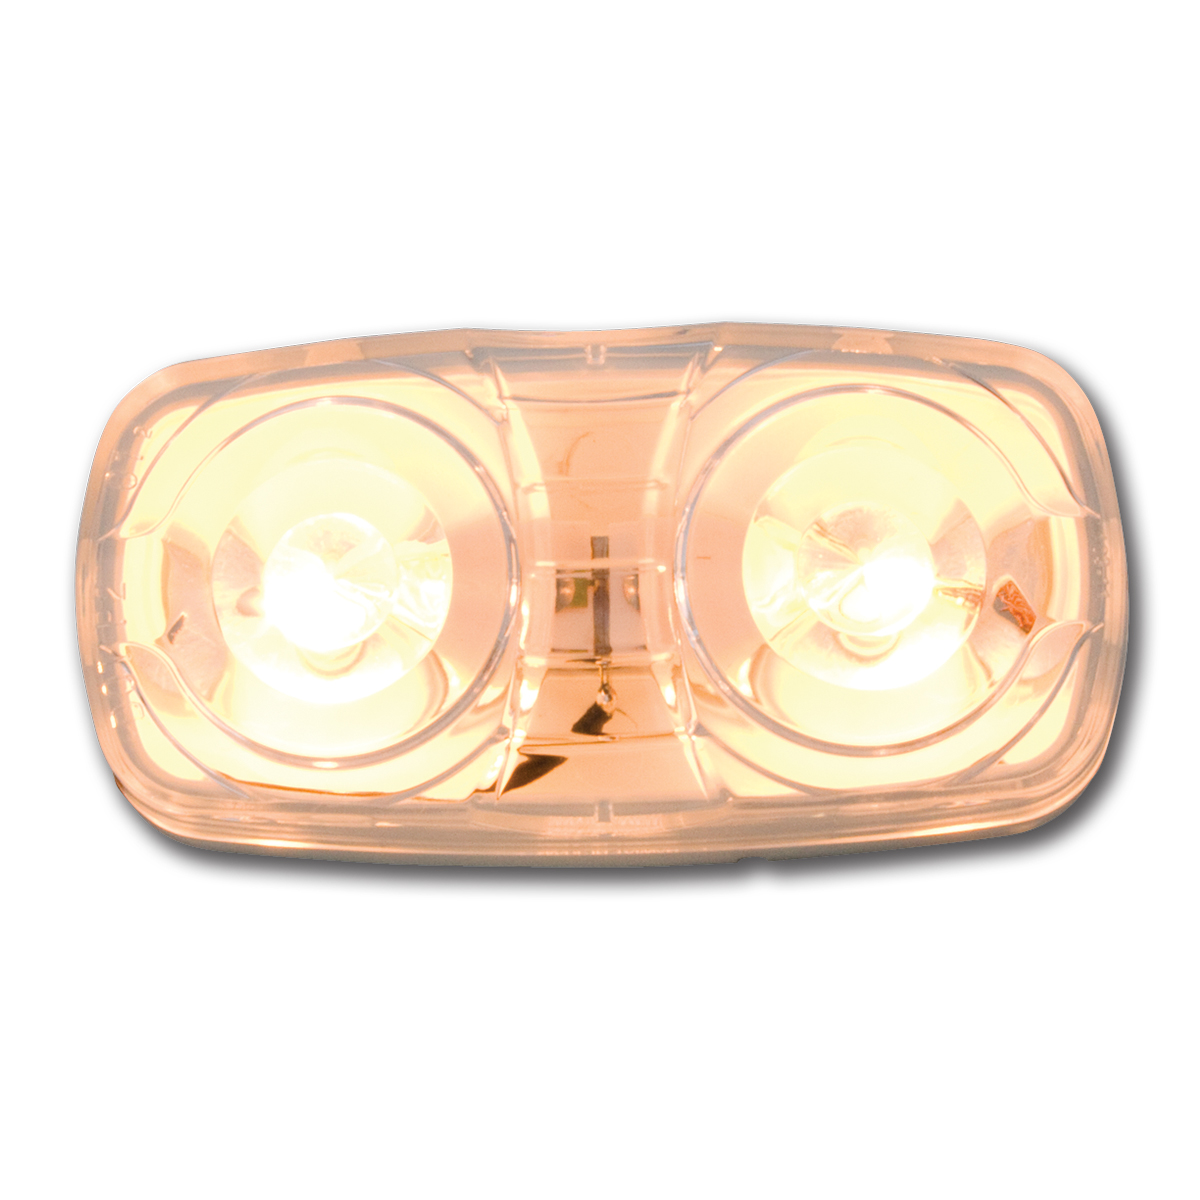 #82922 Tiger Eye Two-Bulb Clear Light with White Plastic Base